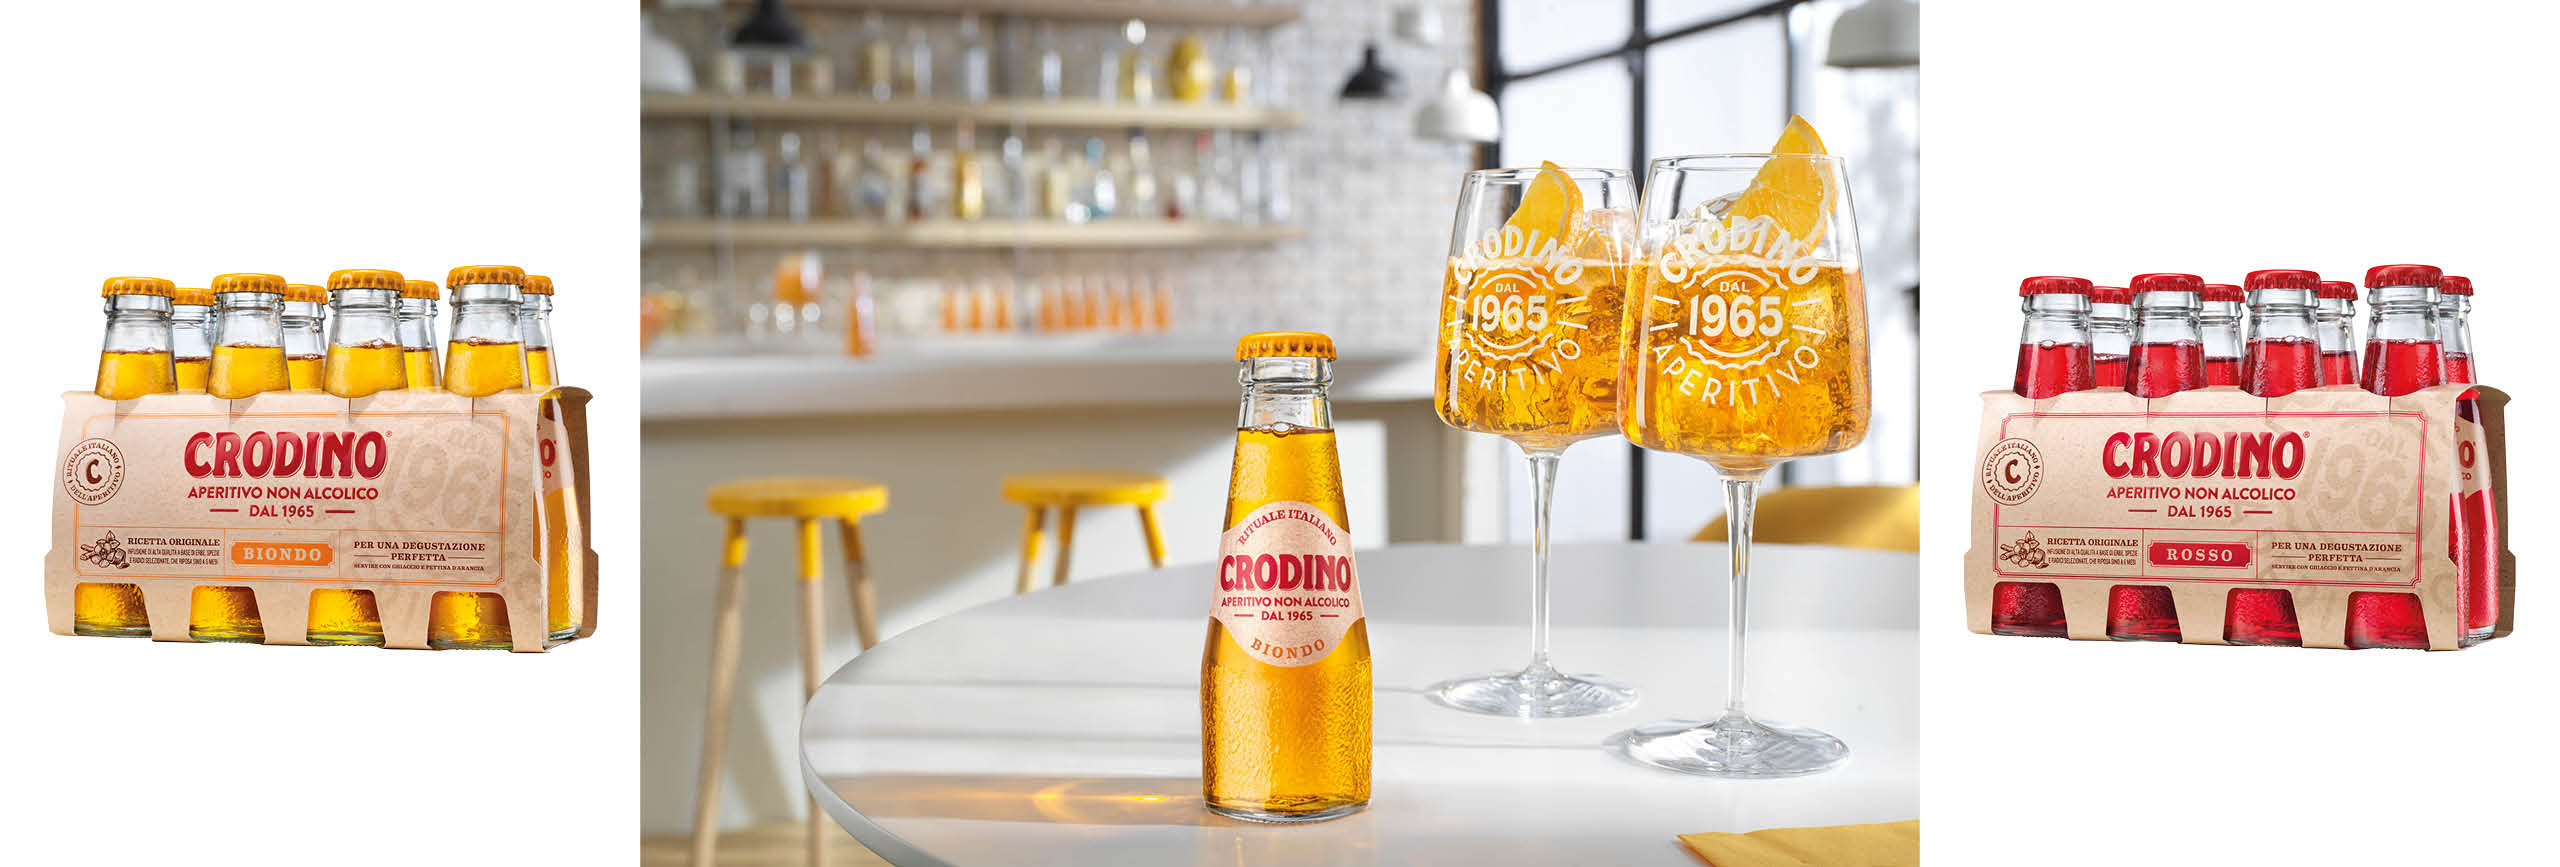 Spritziges Crodino-Package